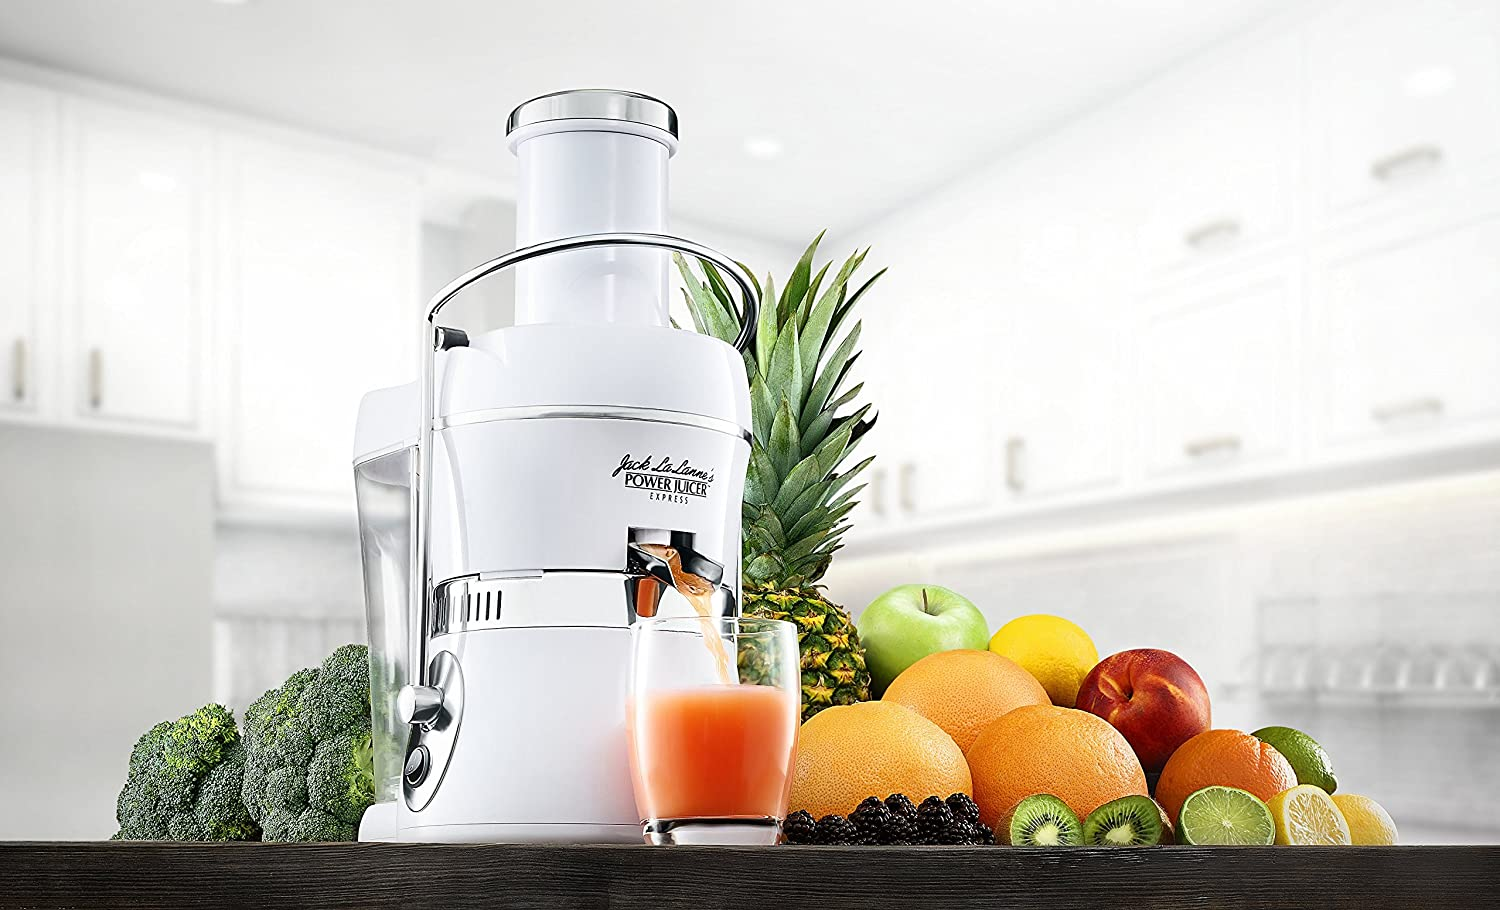 Top 6 Jack LaLanne Juicers – High Quality Premium Juicers